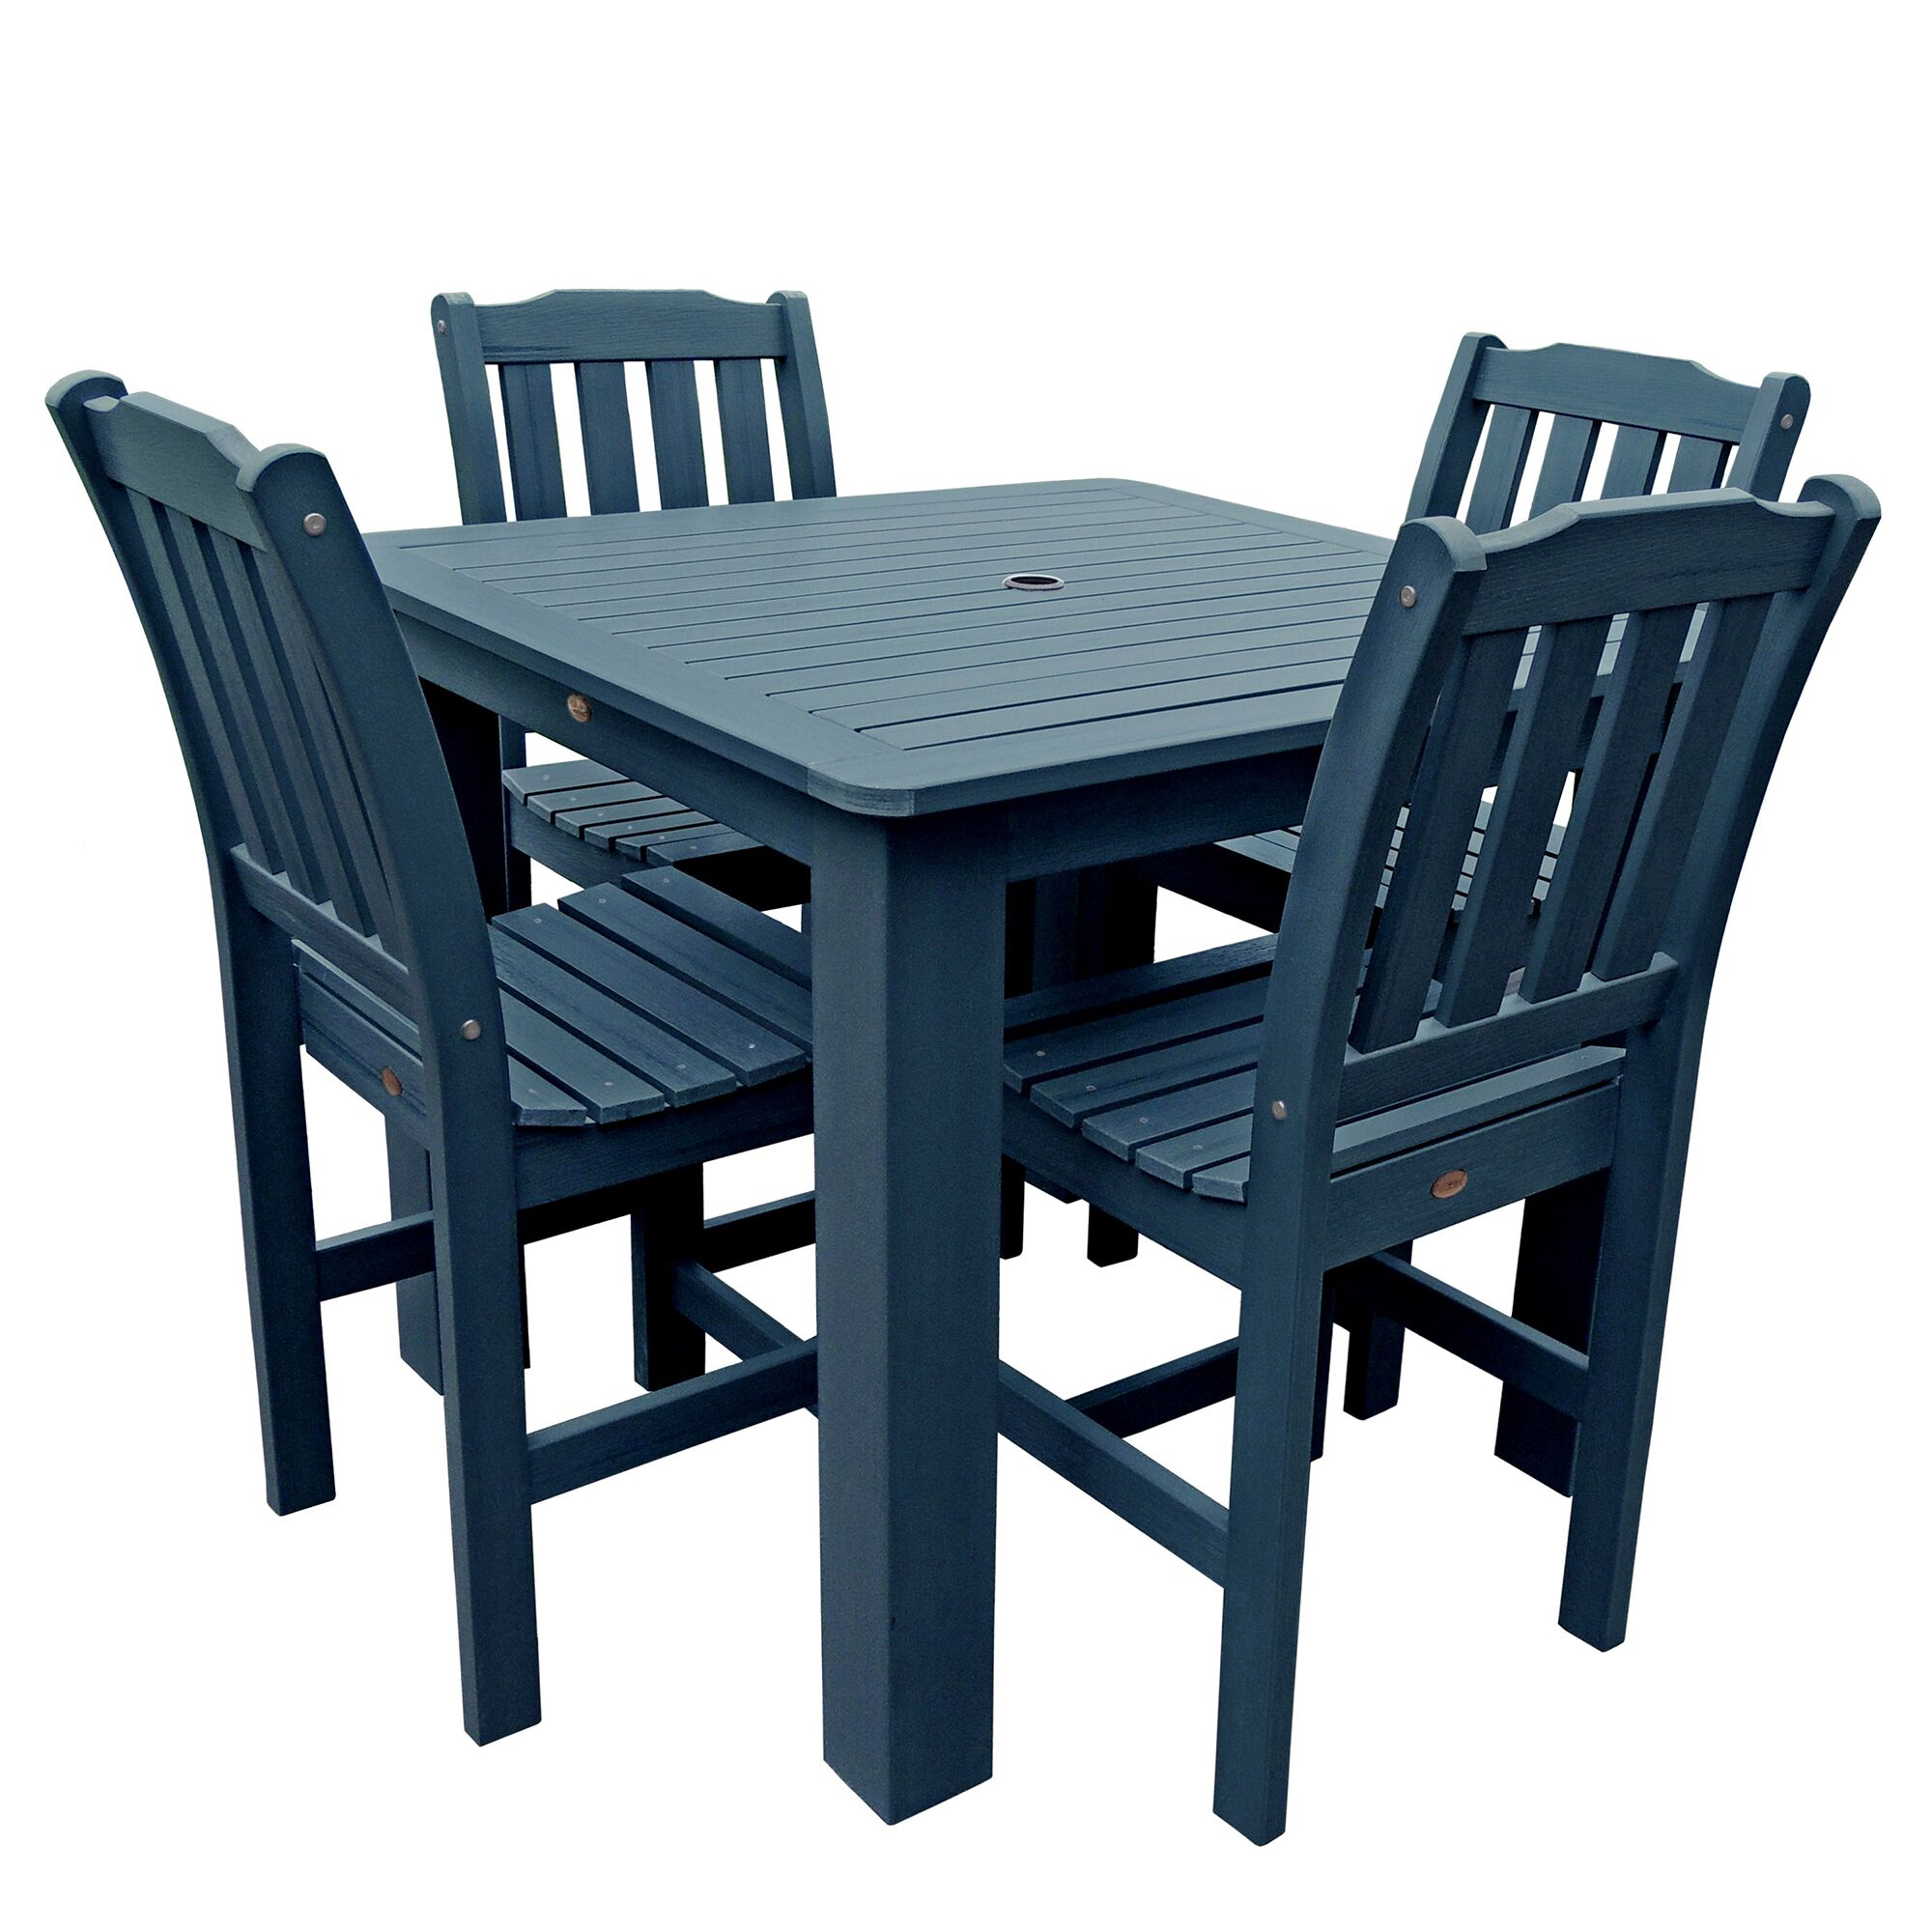 Phat Tommy Lehigh 5 Piece Dining Set Table Size: 42